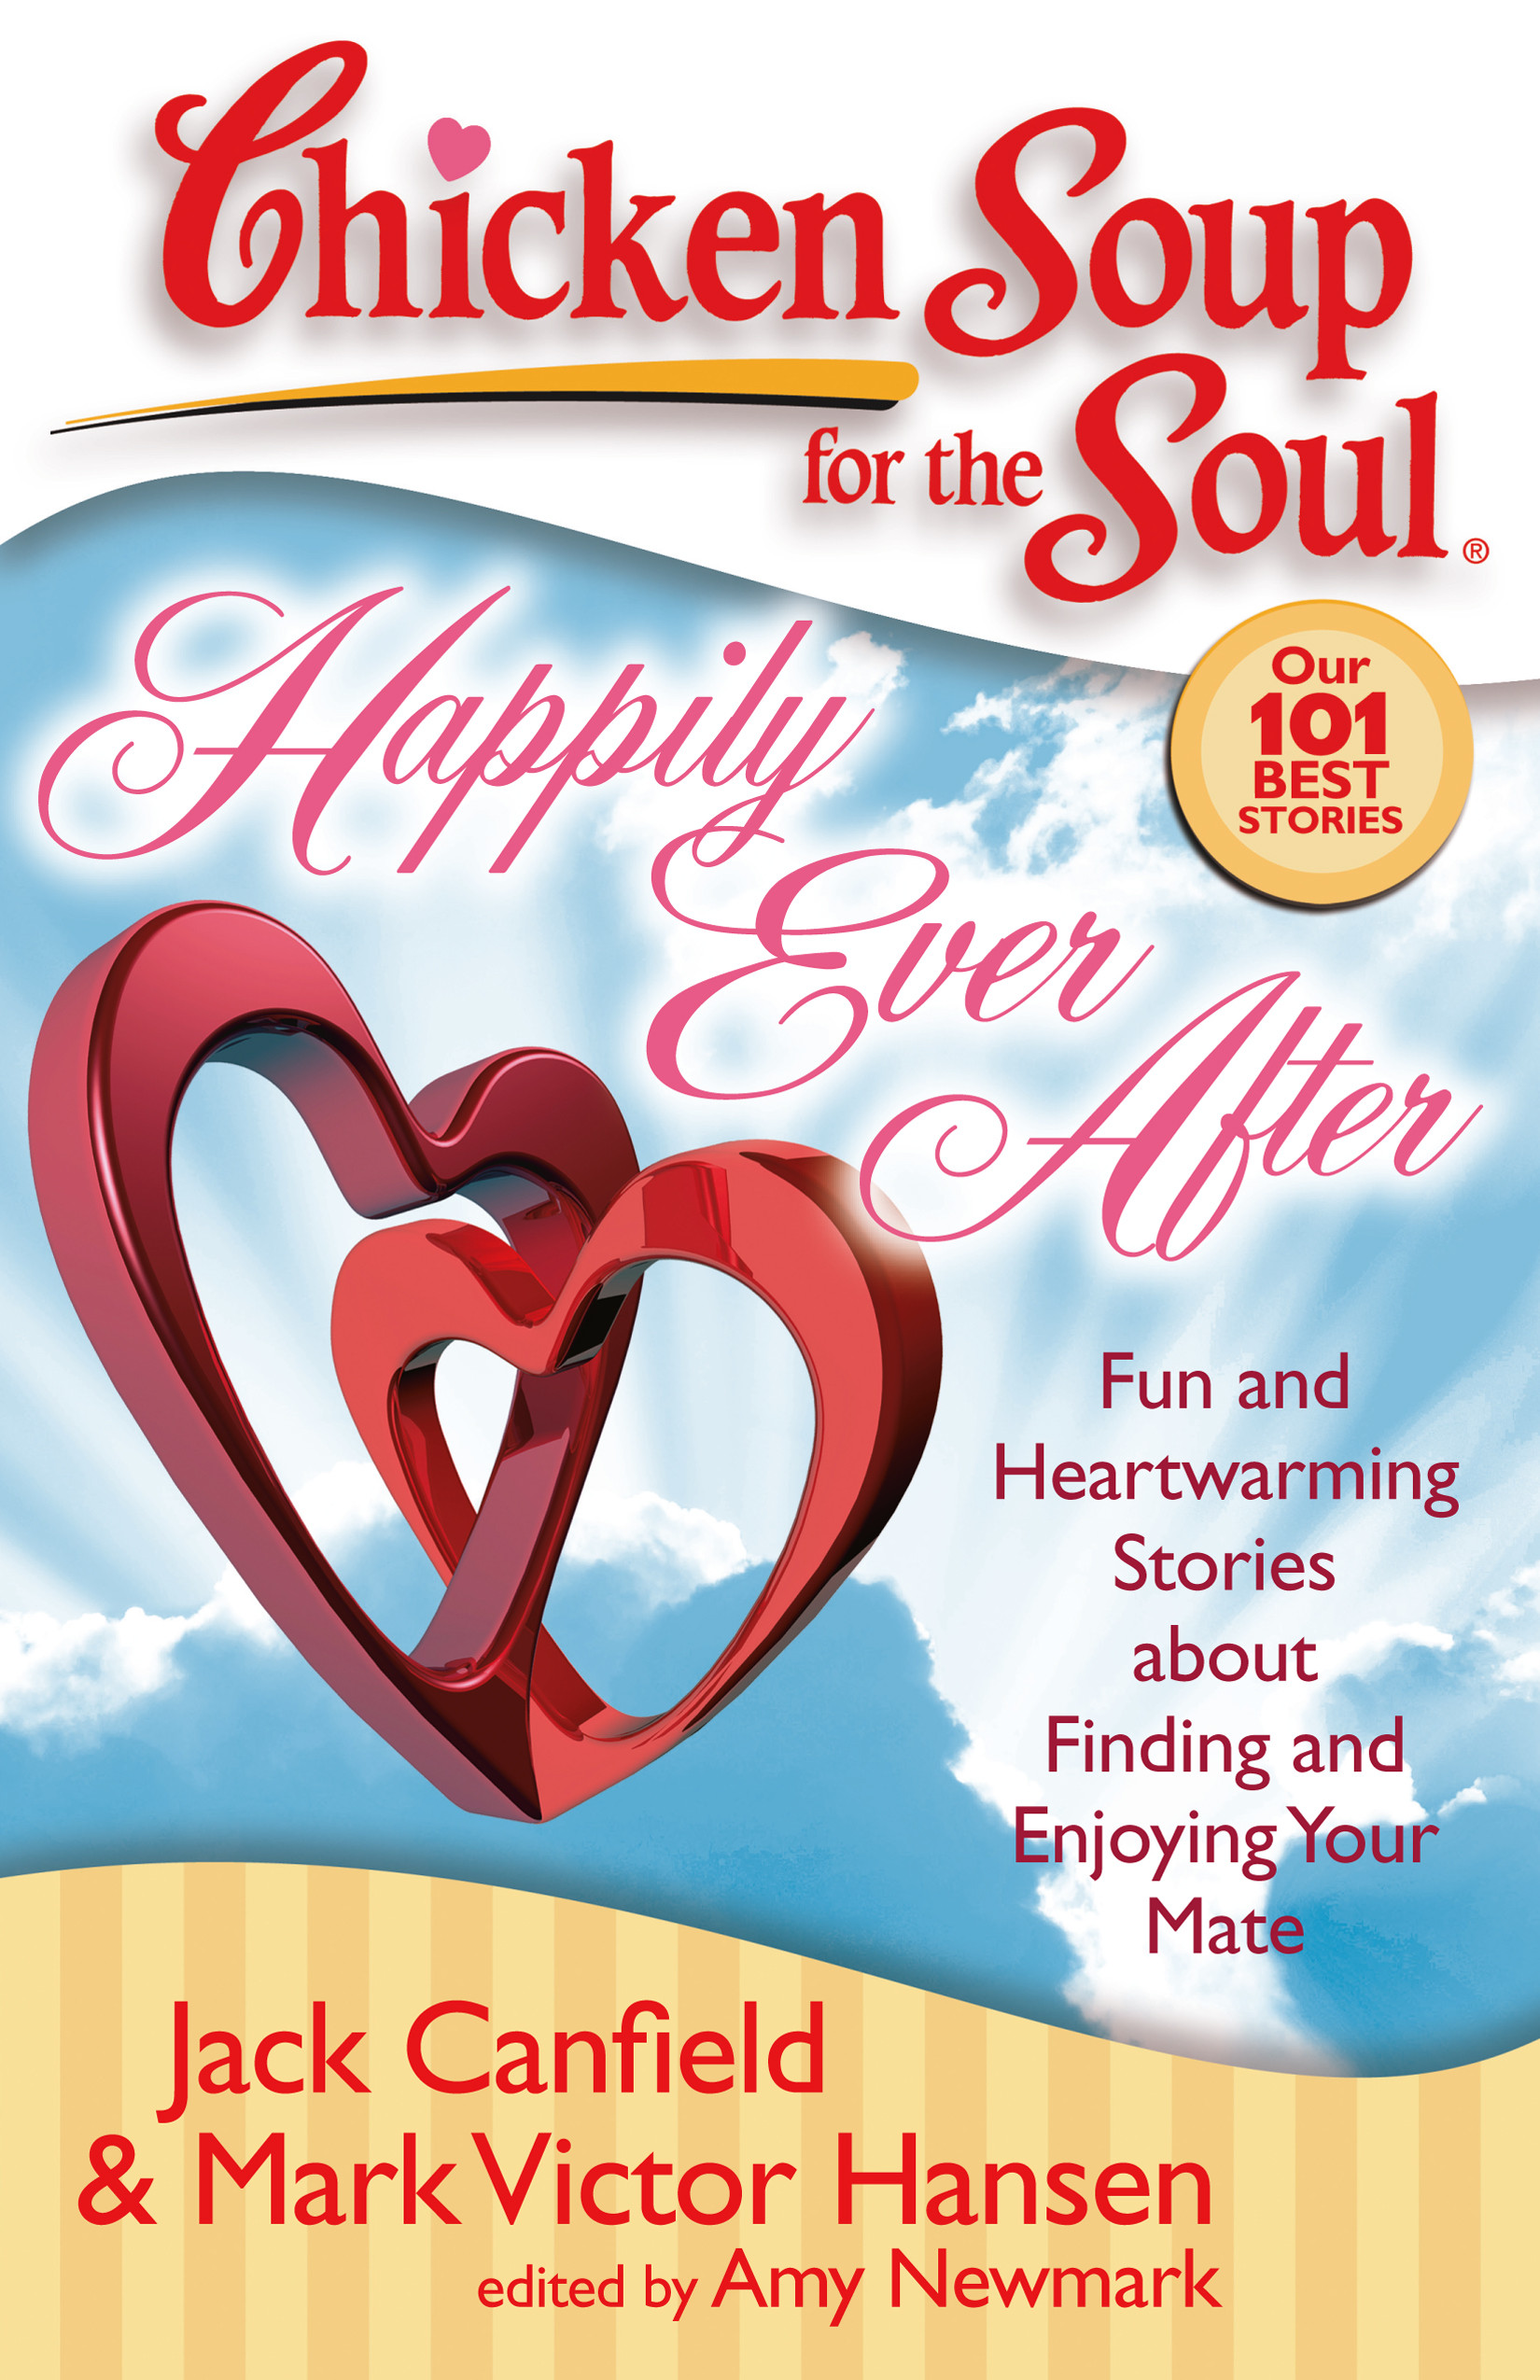 Chicken Soup For The Soul Books  Chicken Soup for the Soul Happily Ever After